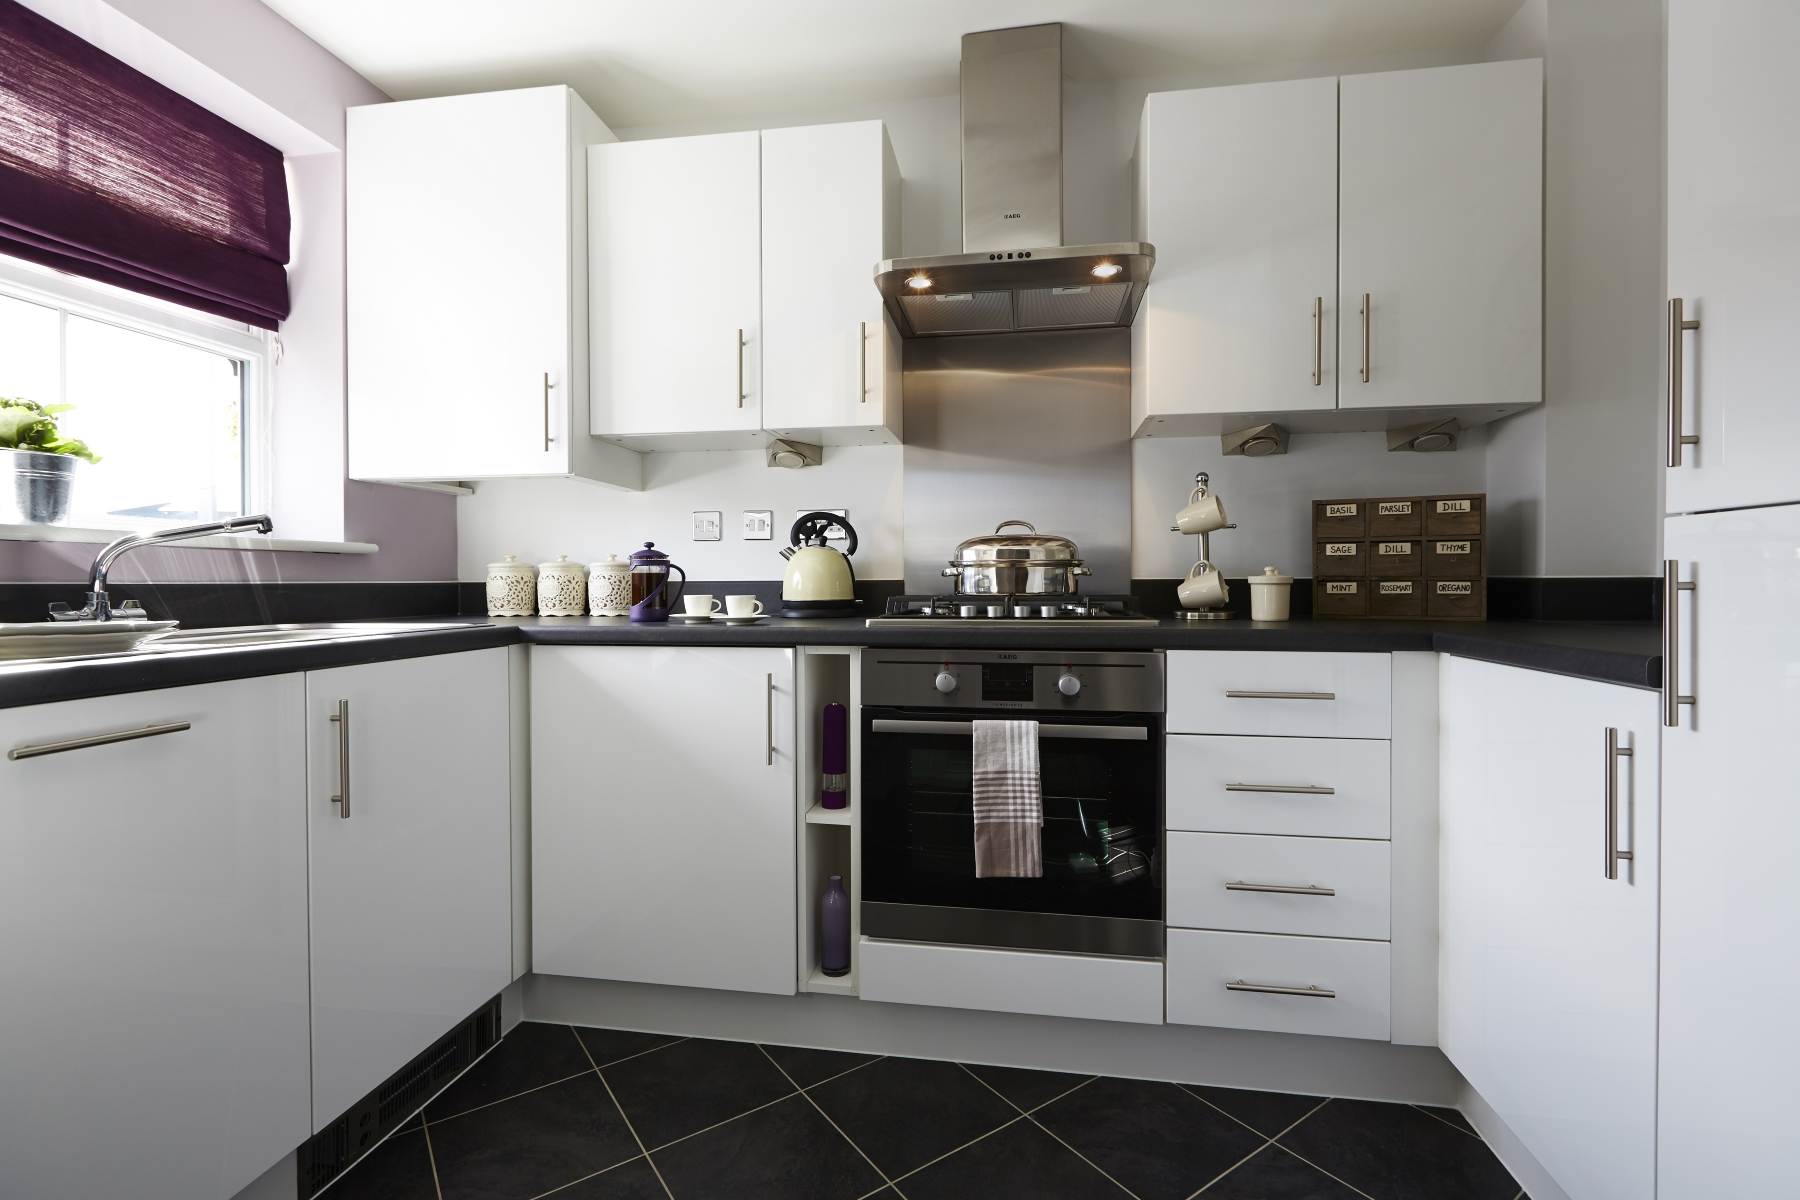 TW Mids_Jubilee Gardens_PA25_Canford_Kitchen